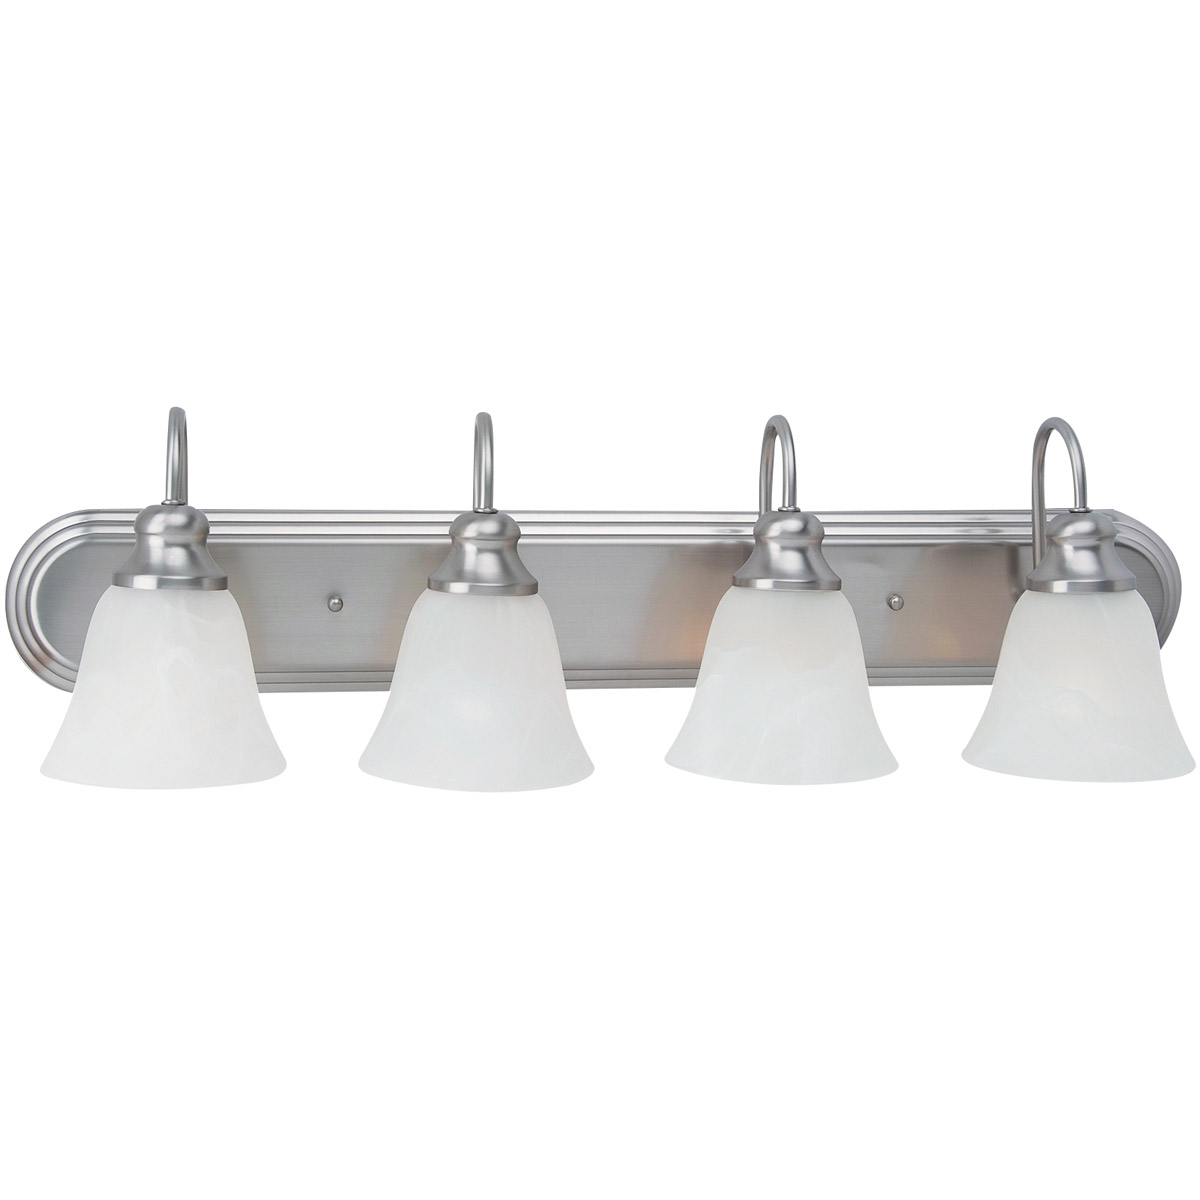 Sea Gull Lighting Windgate 4 Light Bath Vanity in Brushed Nickel 44942-962 photo